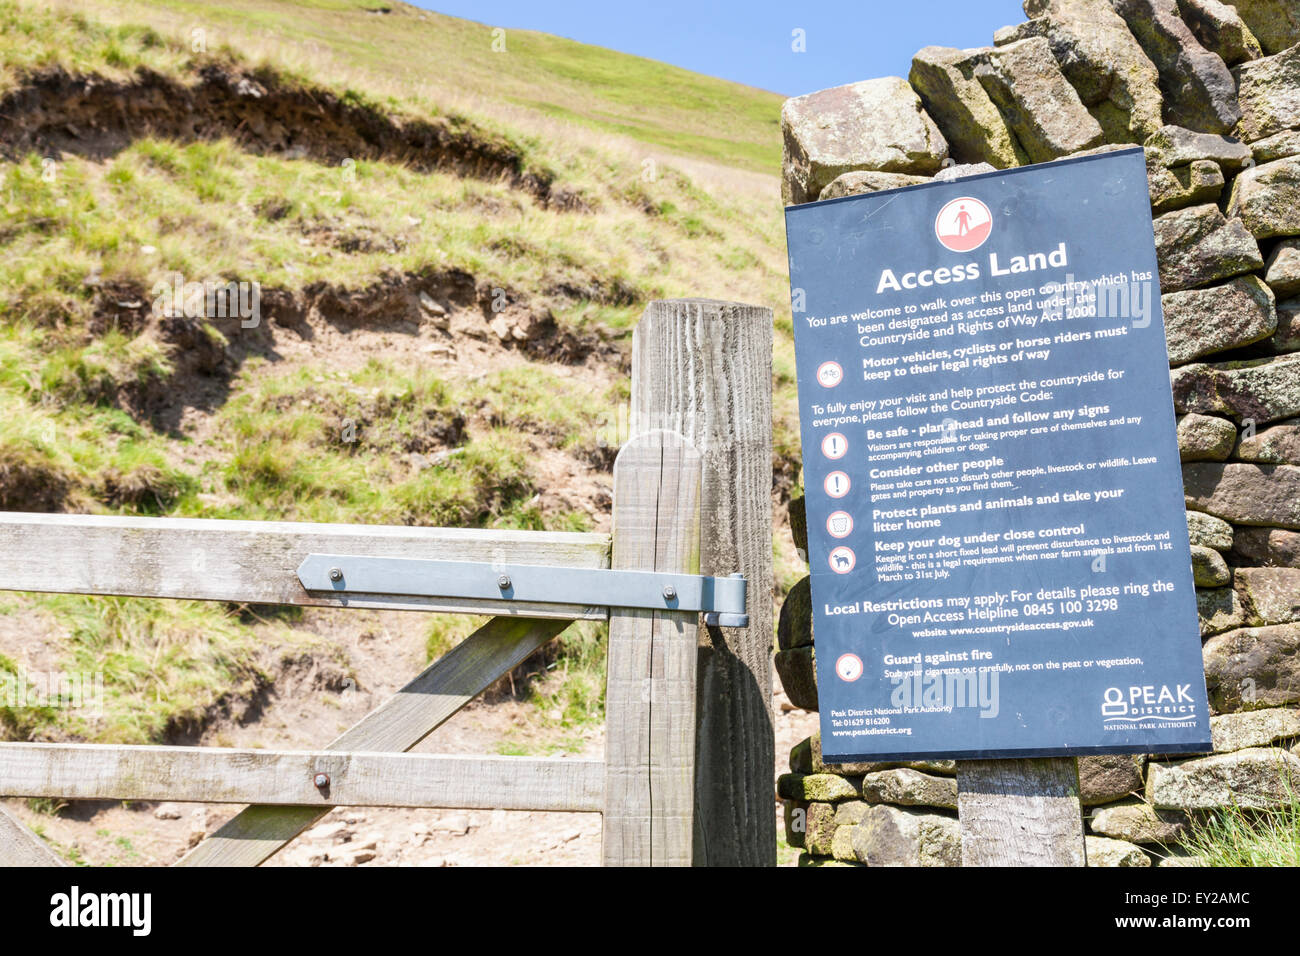 Access land sign on the boundary of open countryside allowing freedom to roam across moors on Kinder Scout, Derbyshire, - Stock Image